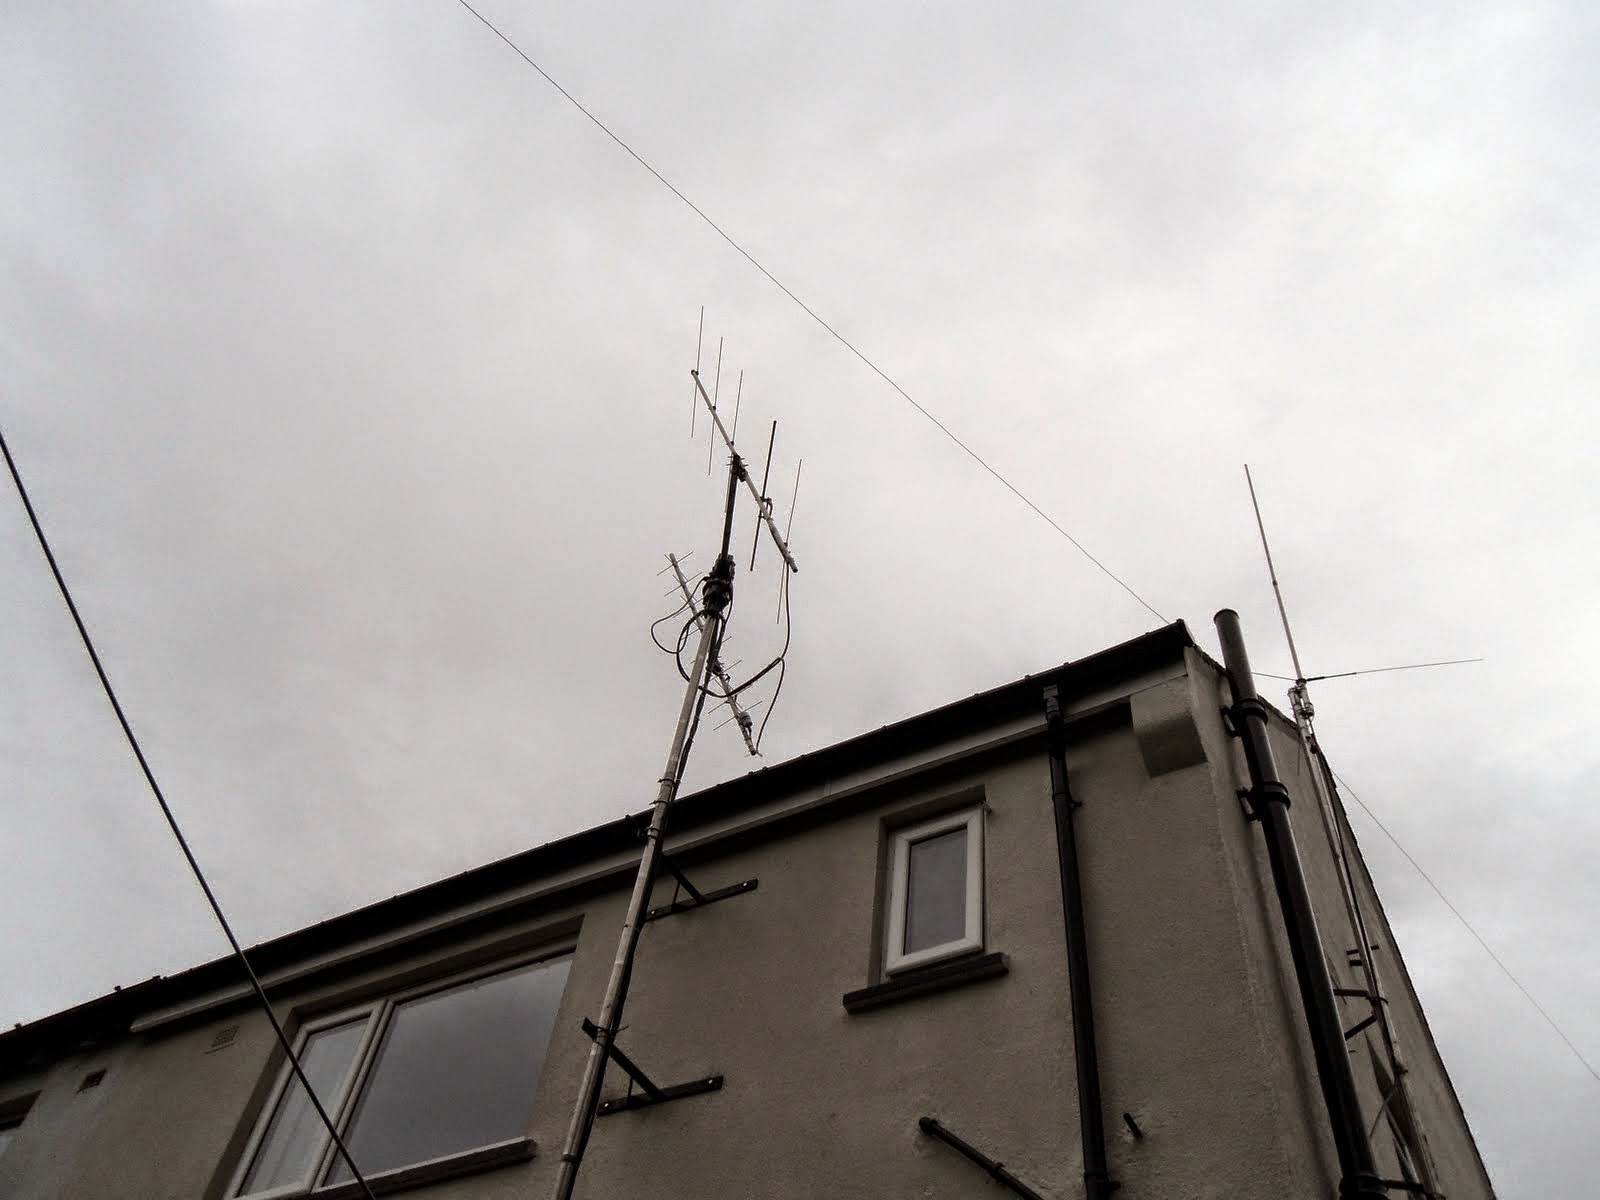 SAT%2BARRAY%252C%2BCW 80%2B%2B%2526%2BTri%2BBand%2BVertical Photo of 2m / 70cm satellite antenna. While I've made a point elsewhere that ...